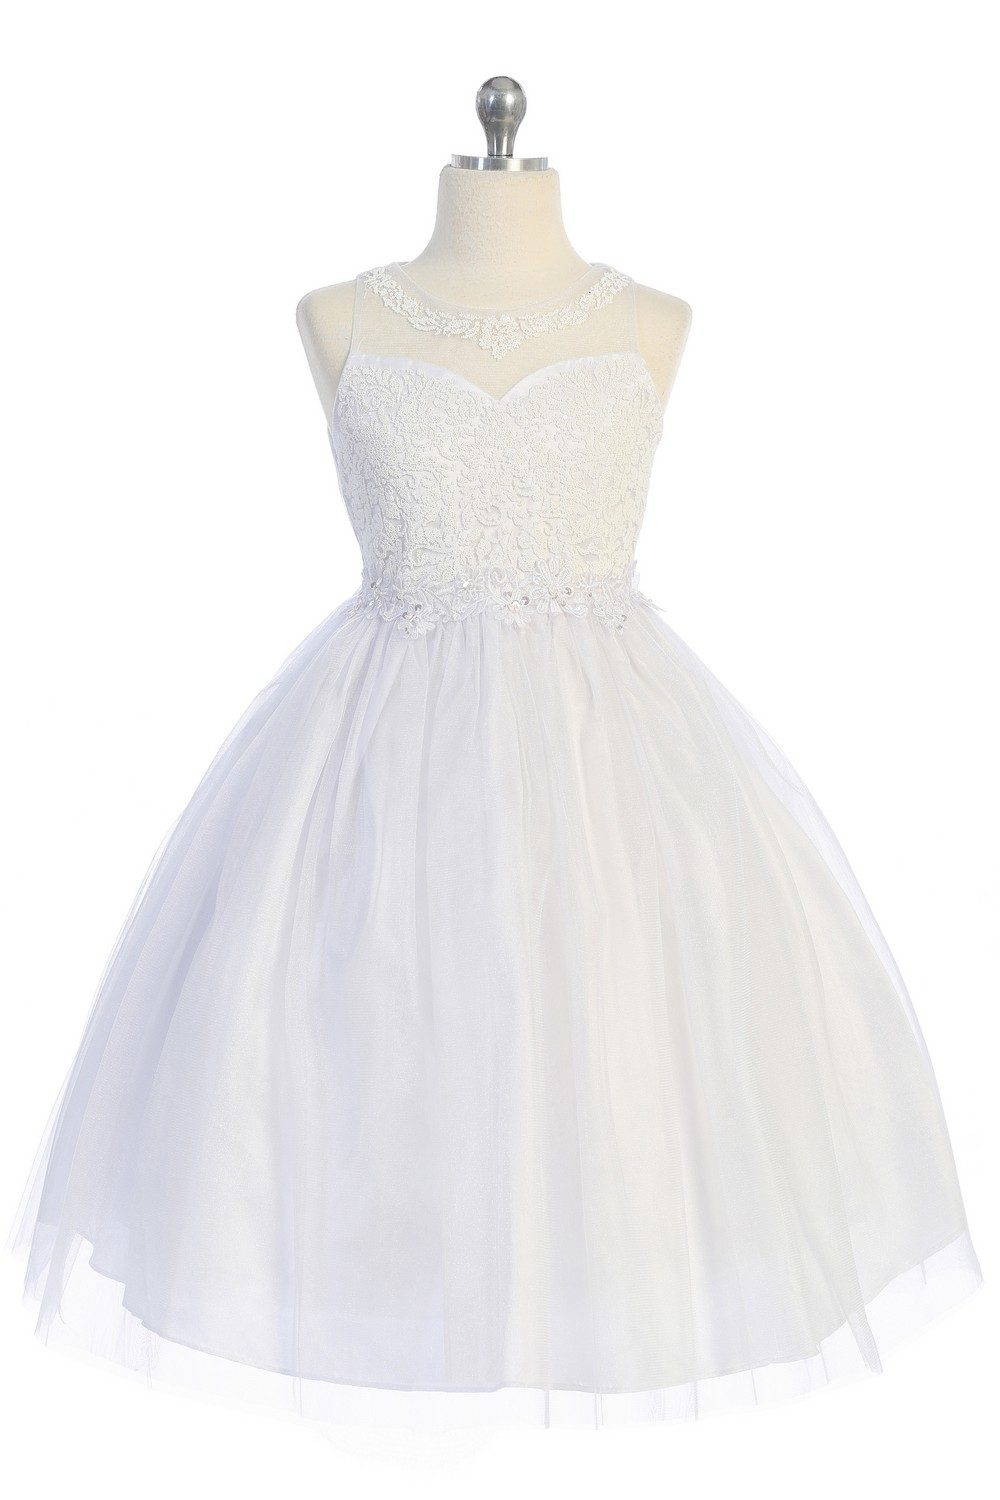 Embroidered lace tulle first communion dress